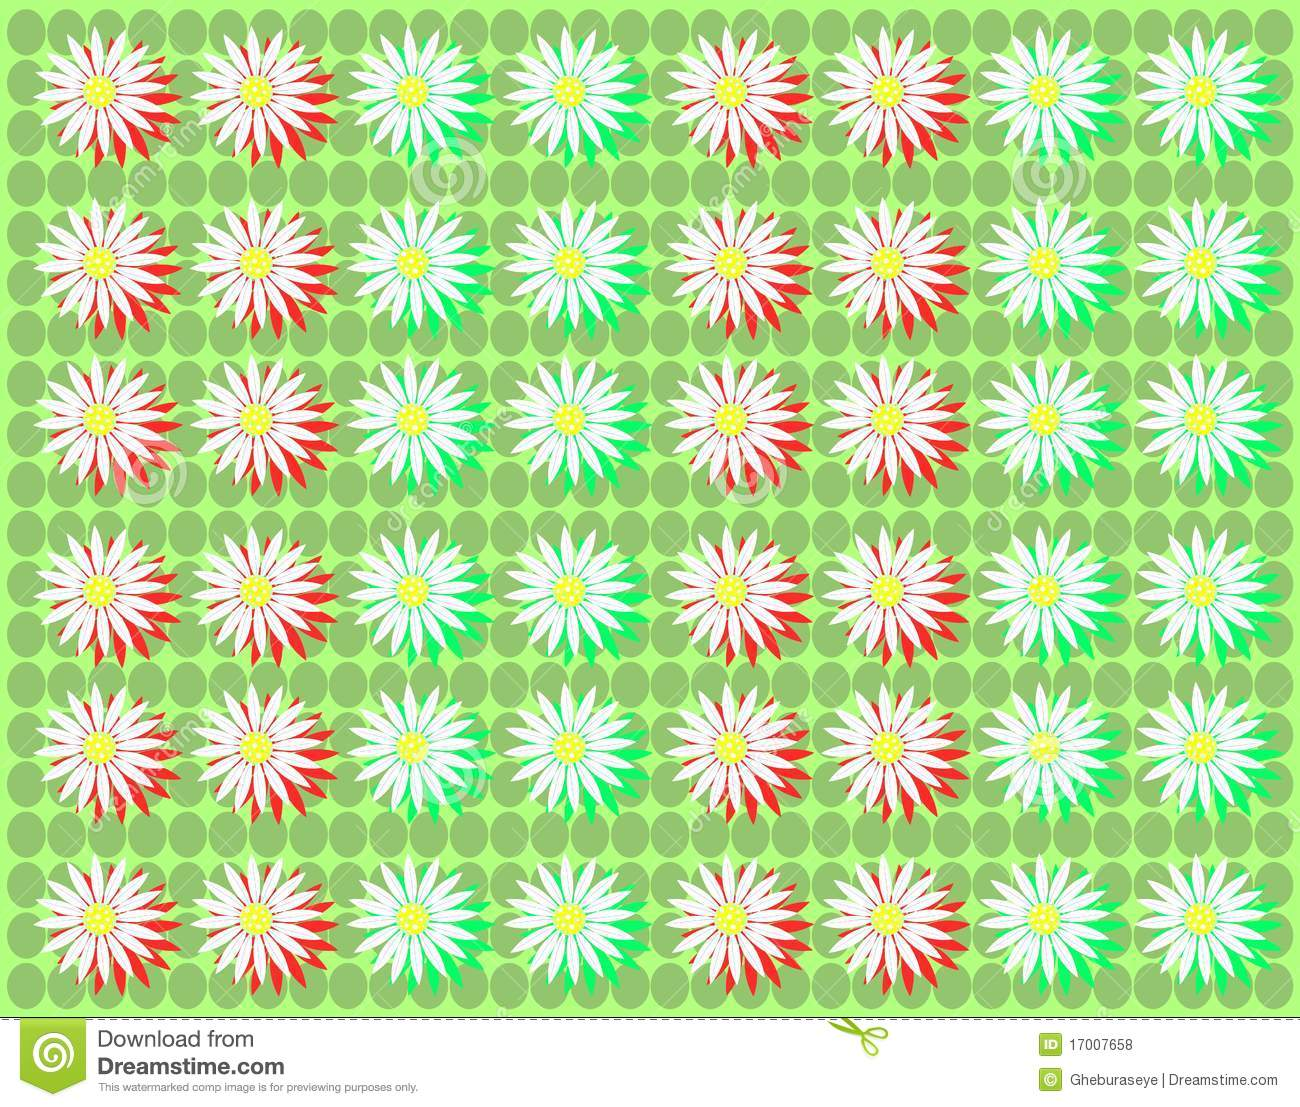 Colorful background with daisies in green